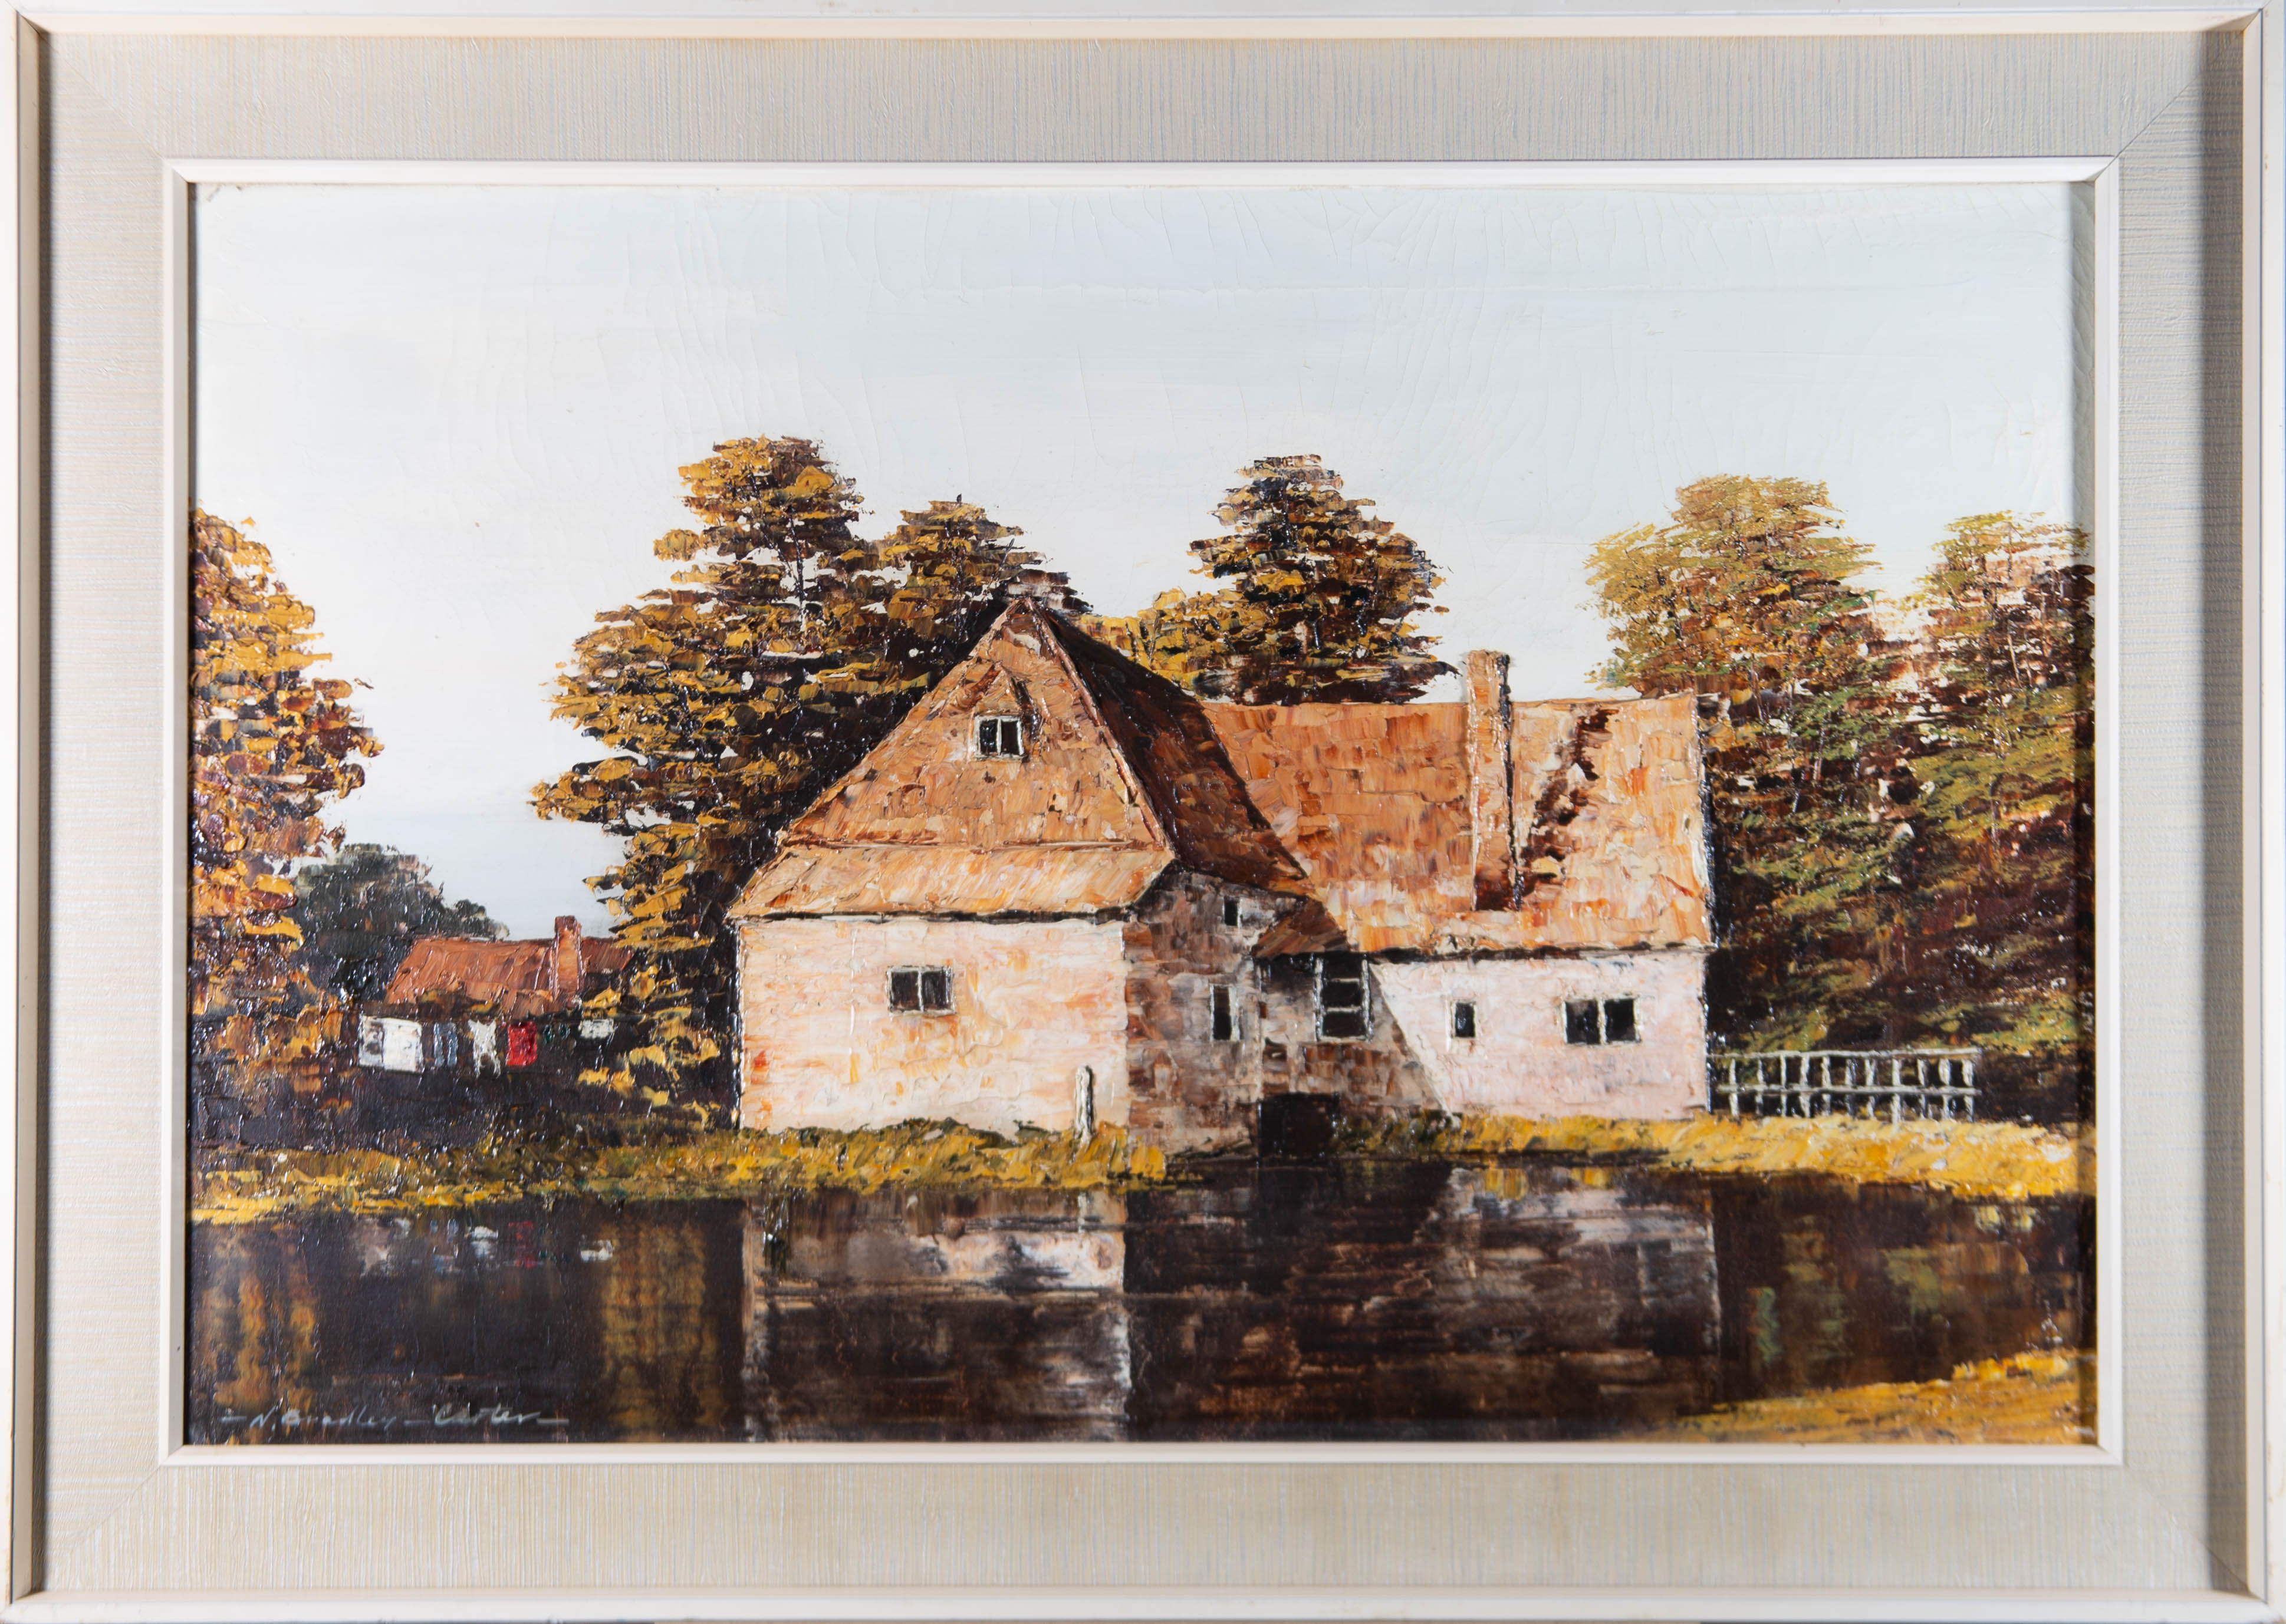 N. Bradley Carter RA - Signed & Framed Mid 20th Century Acrylic, The Old Mill